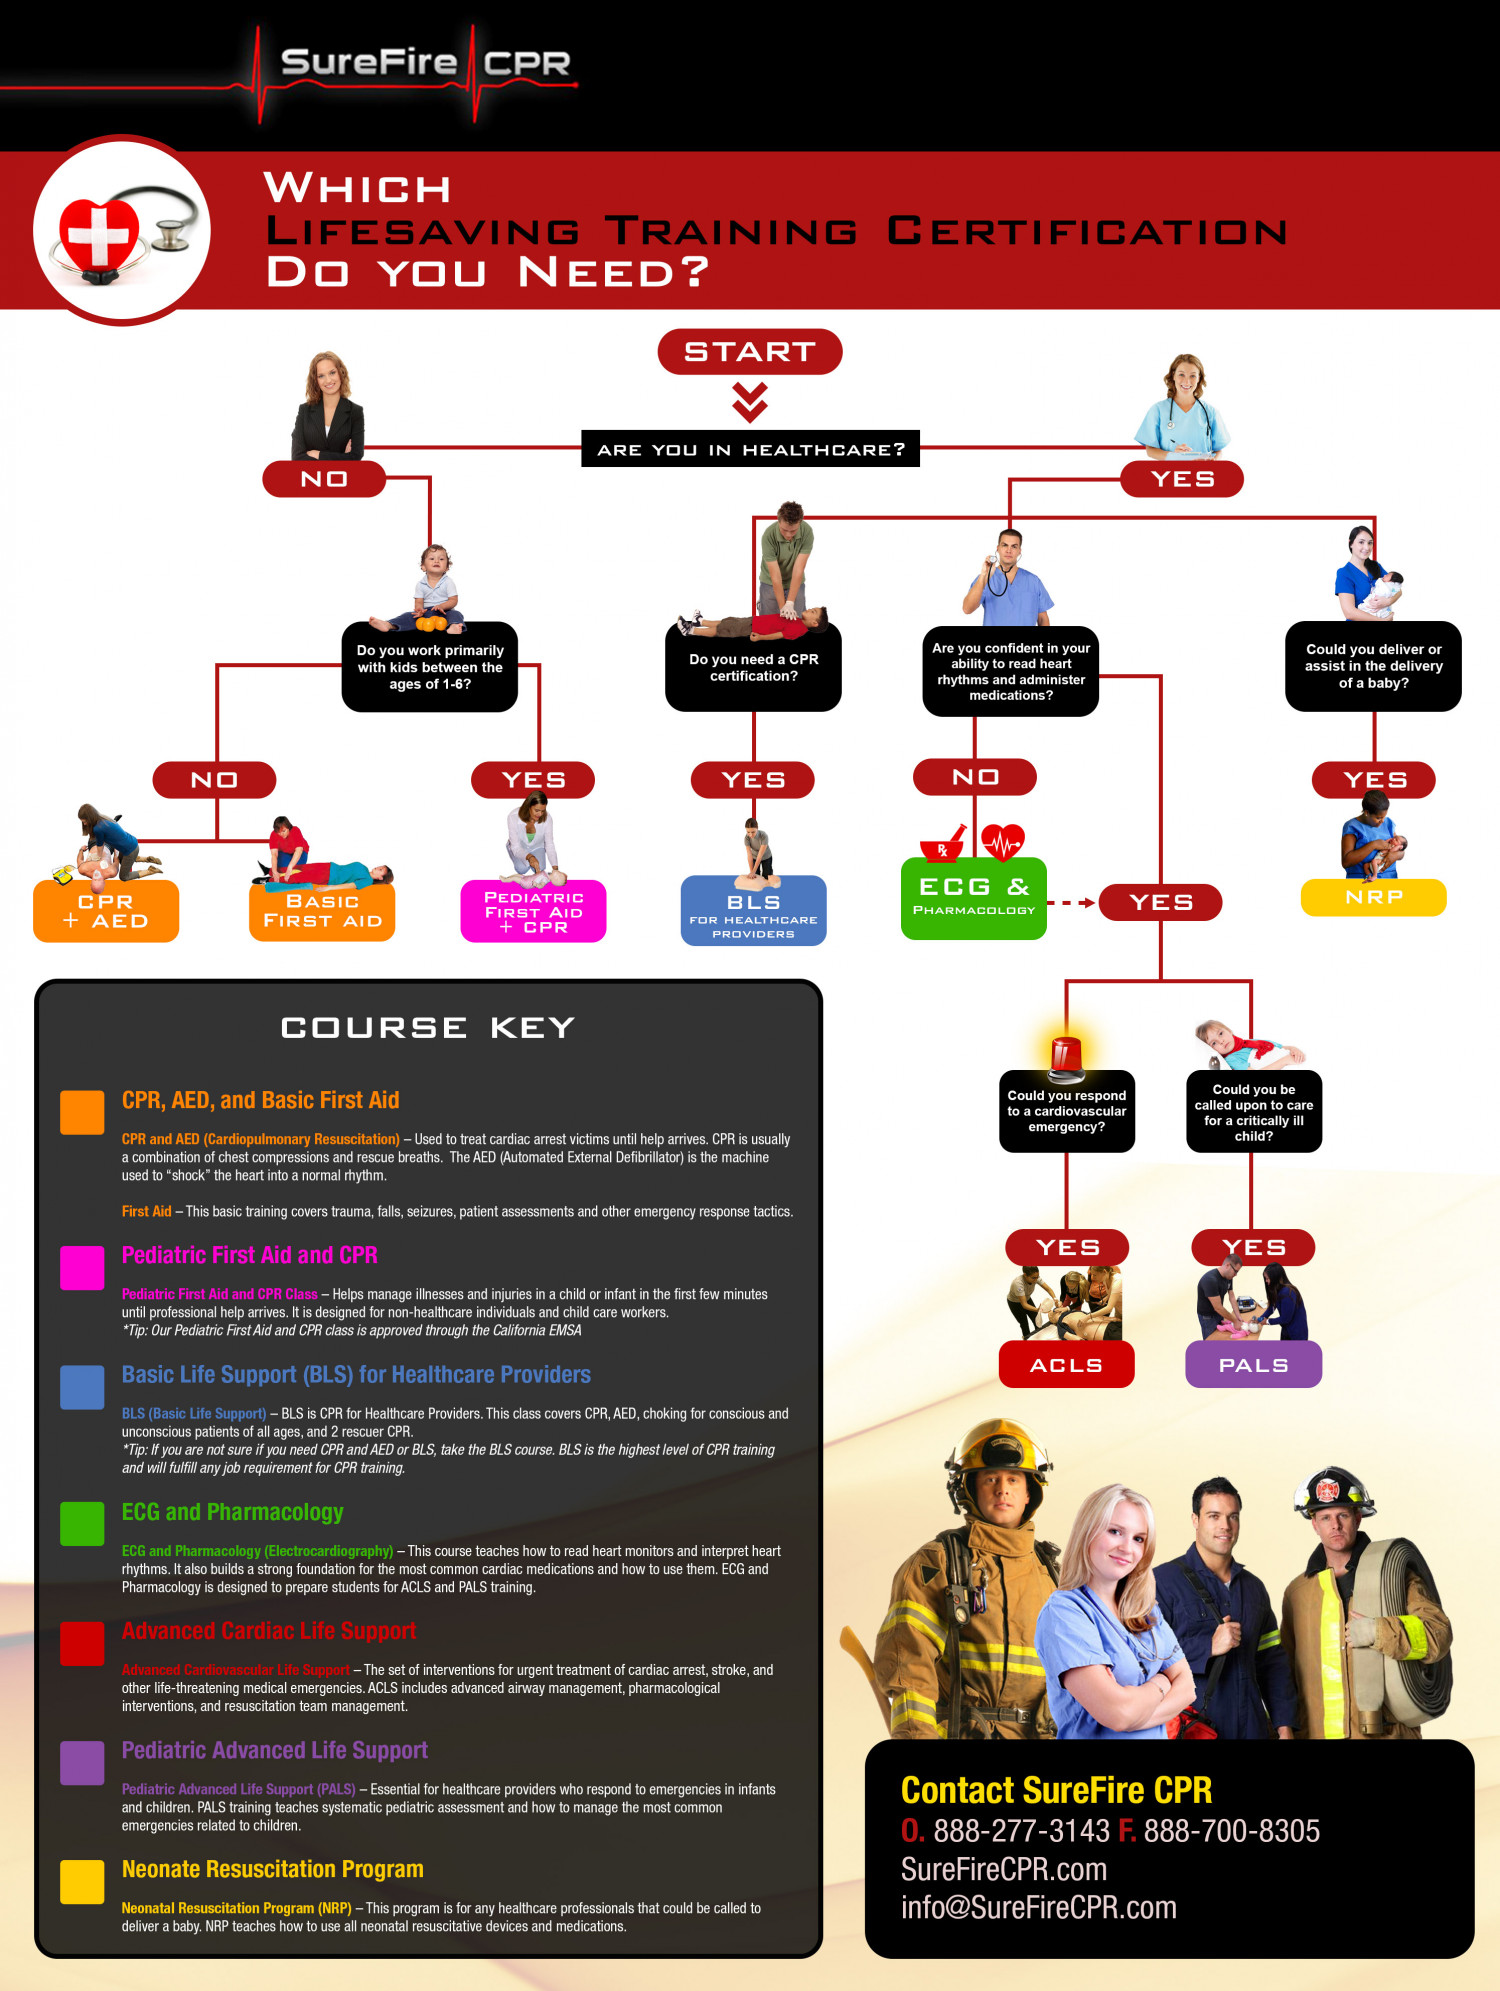 What Healthcare Certification Do you Need? Infographic